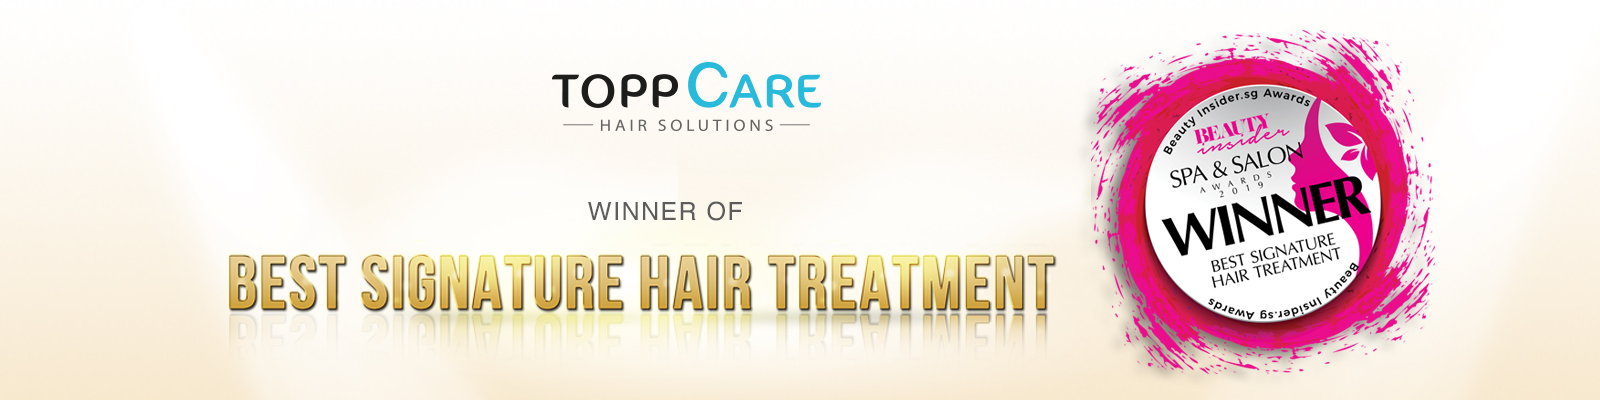 Topp Care-Winner of Best Signature Hair Treatment